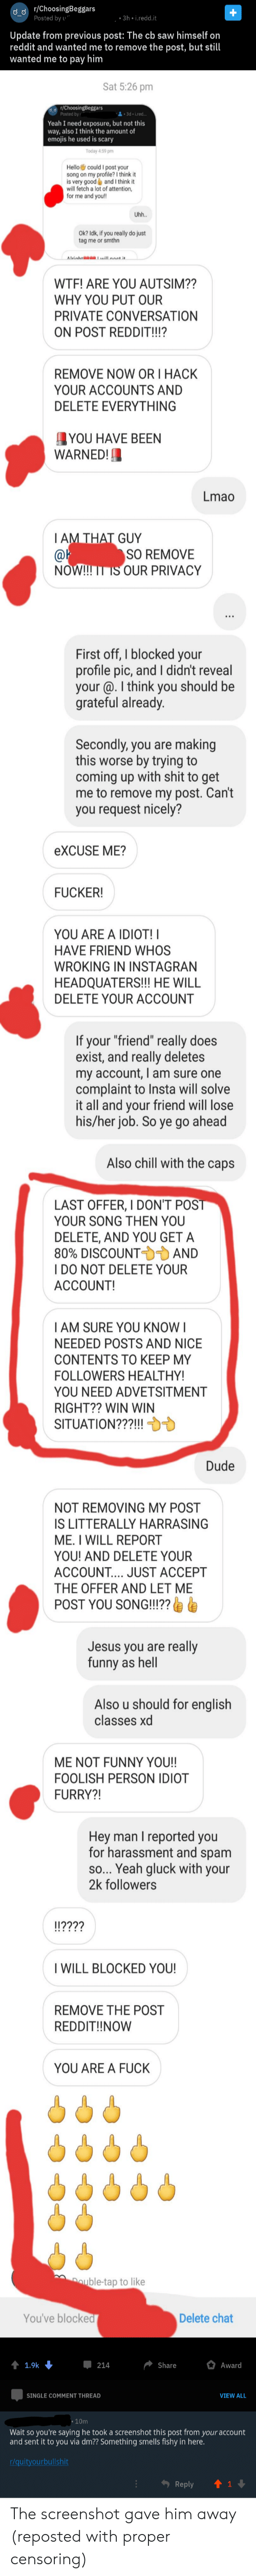 """Chill, Dude, and Funny: r/ChoosingBeggars  Posted by u  3h i.redd.it  Update from previous post: The cb saw himself on  reddit and wanted me to remove the post, but still  wanted me to pay him  Sat 5:26 pm  r/ChoosingBeggars  Posted by  3d i.red..  Yeah I need exposure, but not this  way, also I think the amount of  emojis he used is scary  Today 4:59 pm  Hello could I post your  song on my profile? I think it  is very good and I think it  will fetch a lot of attention,  for me and you!  Uhh..  Ok? Idk, if you really do just  tag me or smthn  Alrinht  ill not it  WTF! ARE YOU AUTSIM??  WHY YOU PUT OUR  PRIVATE CONVERSATION  ON POST REDDIT!!?  REMOVE NOW OR I HACK  YOUR ACCOUNTS AND  DELETE EVERYTHING  YOU HAVE BEEN  WARNED  Lmao  IAM THAT GUY  @k  NOW!!! IT IS OUR PRIVACY  SO REMOVE  First off, I blocked your  profile pic, and I didn't reveal  your @.I think you should be  grateful already.  Secondly, you aremaking  this worse by trying to  coming up with shit to get  me to remove my post. Can't  you request nicely?  eXCUSE ME?  FUCKER!  YOU ARE A  IOT!  HAVE FRIEND WHOS  WROKING IN INSTAGRAN  HEADQUATERS!!! HE WILL  DELETE YOUR ACCOUNT  If your """"friend"""" really does  exist, and really deletes  my account, I am sure one  complaint to Insta will solve  it all and your friend will lose  his/her job. So ye go ahead  Also chill with the caps  LAST OFFER, I DON'T POŠT  YOUR SONG THEN YOU  DELETE, AND YOU GET A  80% DISCOUNT AND  I DO NOT DELETE YOUR  ACCOUNT!  IAM SURE YOU KNOW I  NEEDED POSTS AND NICE  CONTENTS TO KEEP MY  FOLLOWERS HEALTHY!  YOU NEED ADVETSITMENT  RIGHT?? WIN WIN  SITUATION???!!!  Dude  NOT REMOVING MY POST  IS LITTERALLY HARRASING  ME. I WILL REPORT  YOU! AND DELETE YOUR  ACCOUNT.... JUST ACCEPT  THE OFFER AND LET ME  POST YOU SONG!!!??  Jesus you are really  funny as hell  Also u should for english  classes xd  ME NOT FUNNY YOU!!  FOOLISH PERSON IDIOT  FURRY?!  Hey man I reported you  for harassment and spam  so... Yeah gluck with your  2k followers  """